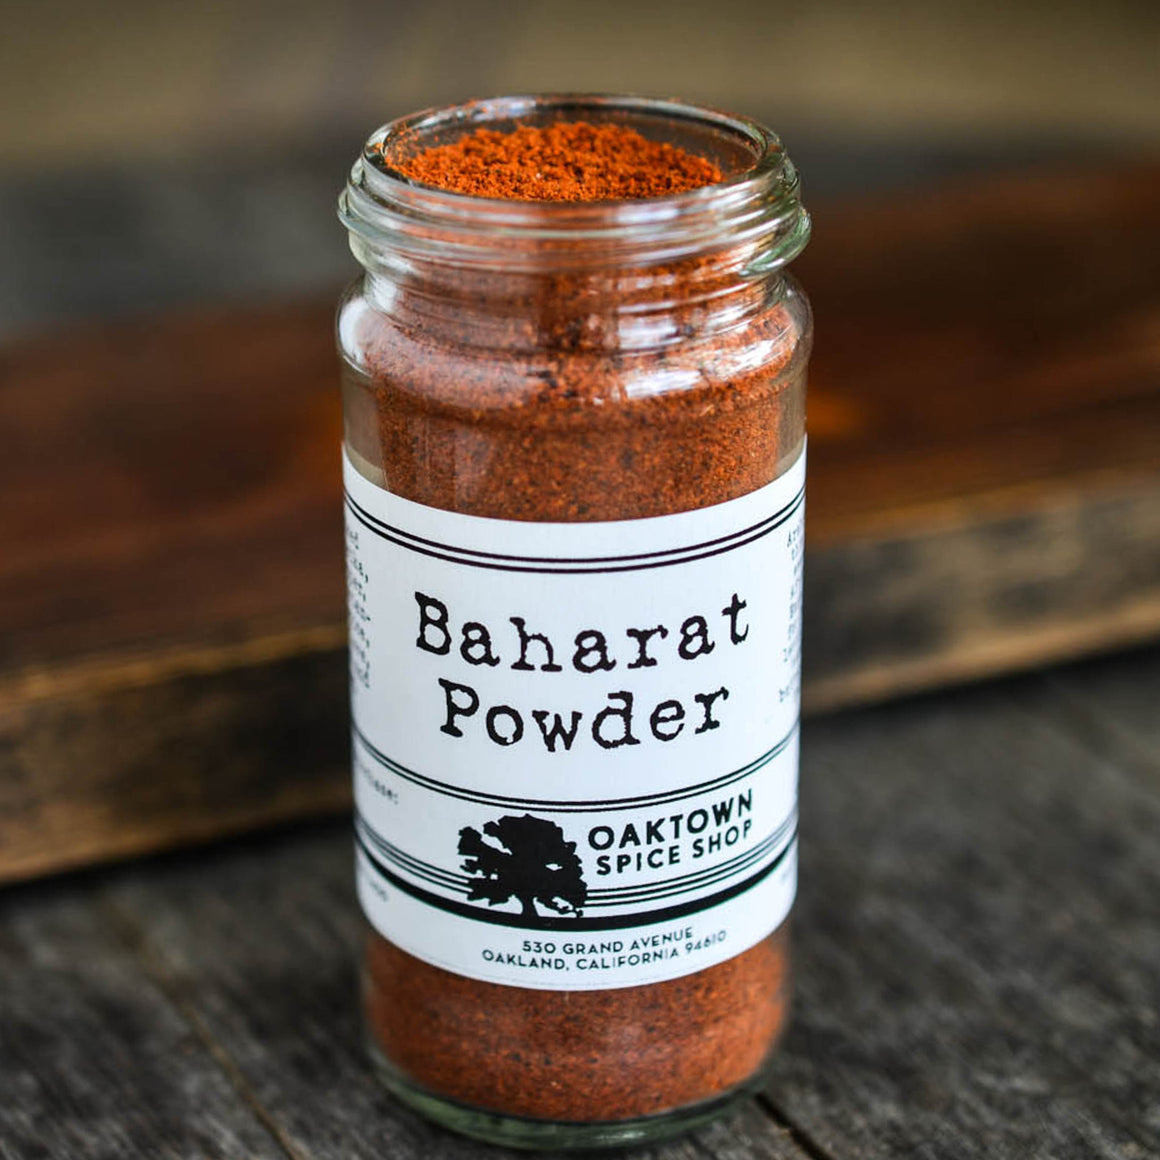 Baharat Powder 1/2 cup jar